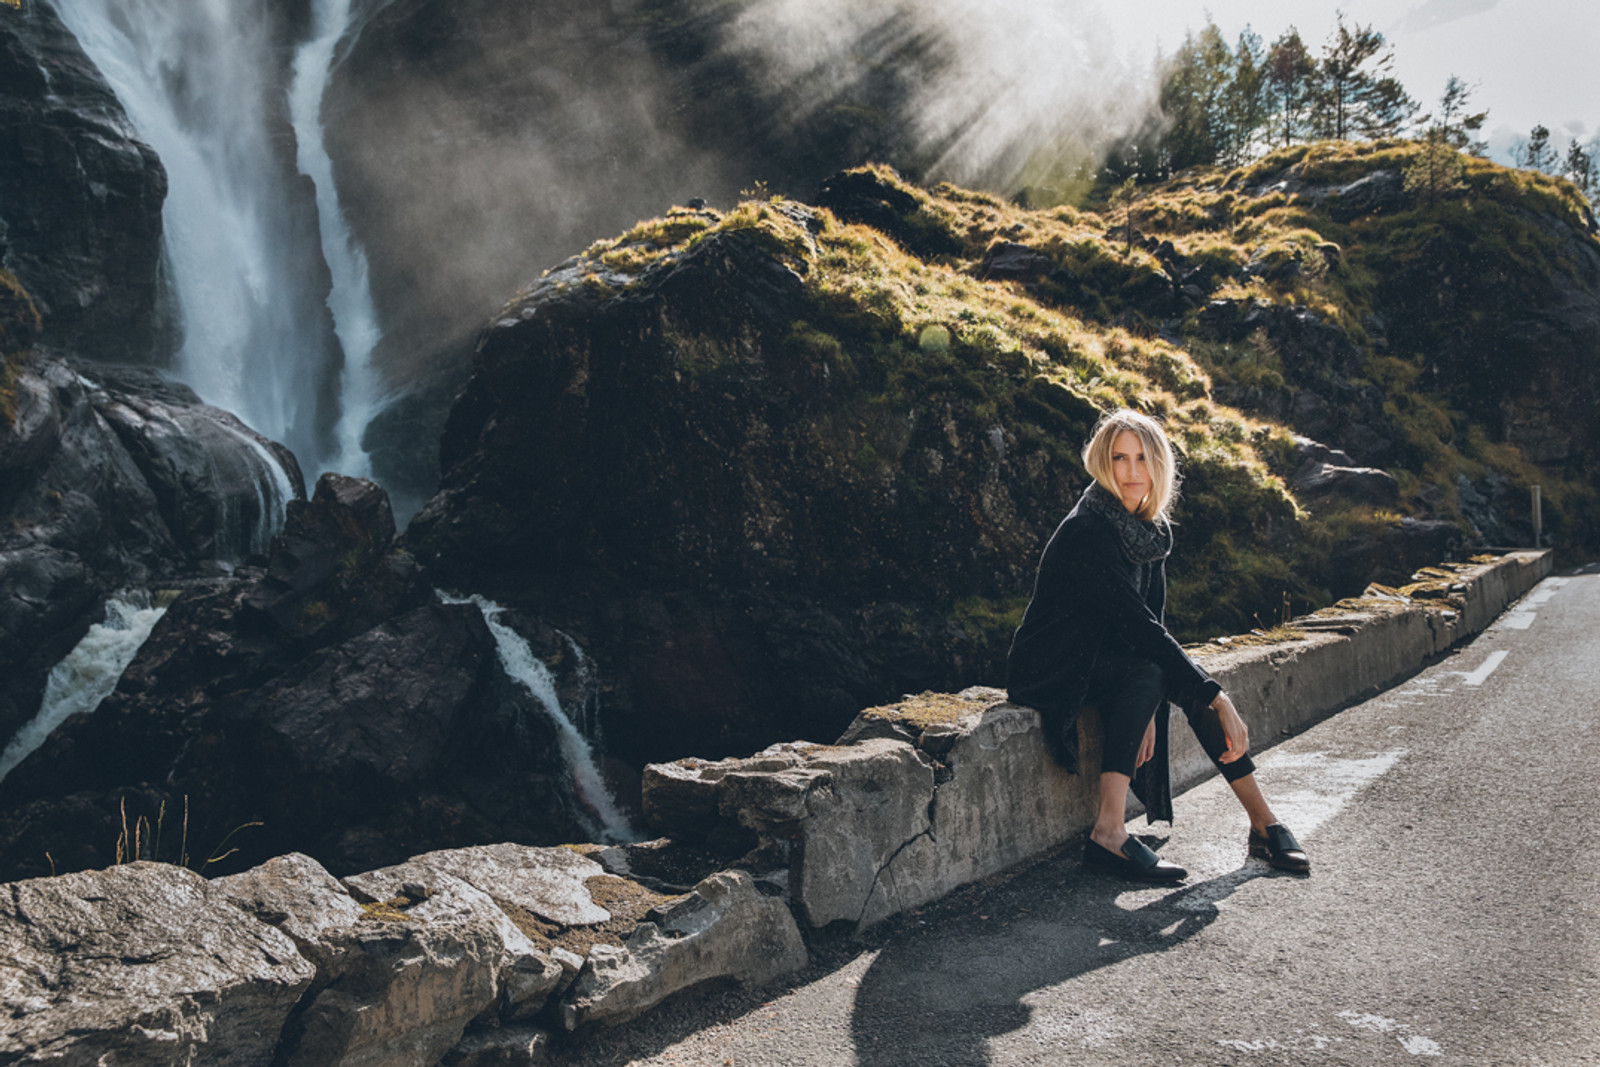 Woman sitting by side of the road wearing Dale of Norway's Nora Ladies Jacket in Black/Smoke, 83331-F, and Flora Scarf in Black/Dark Grey Mel, 11681-F